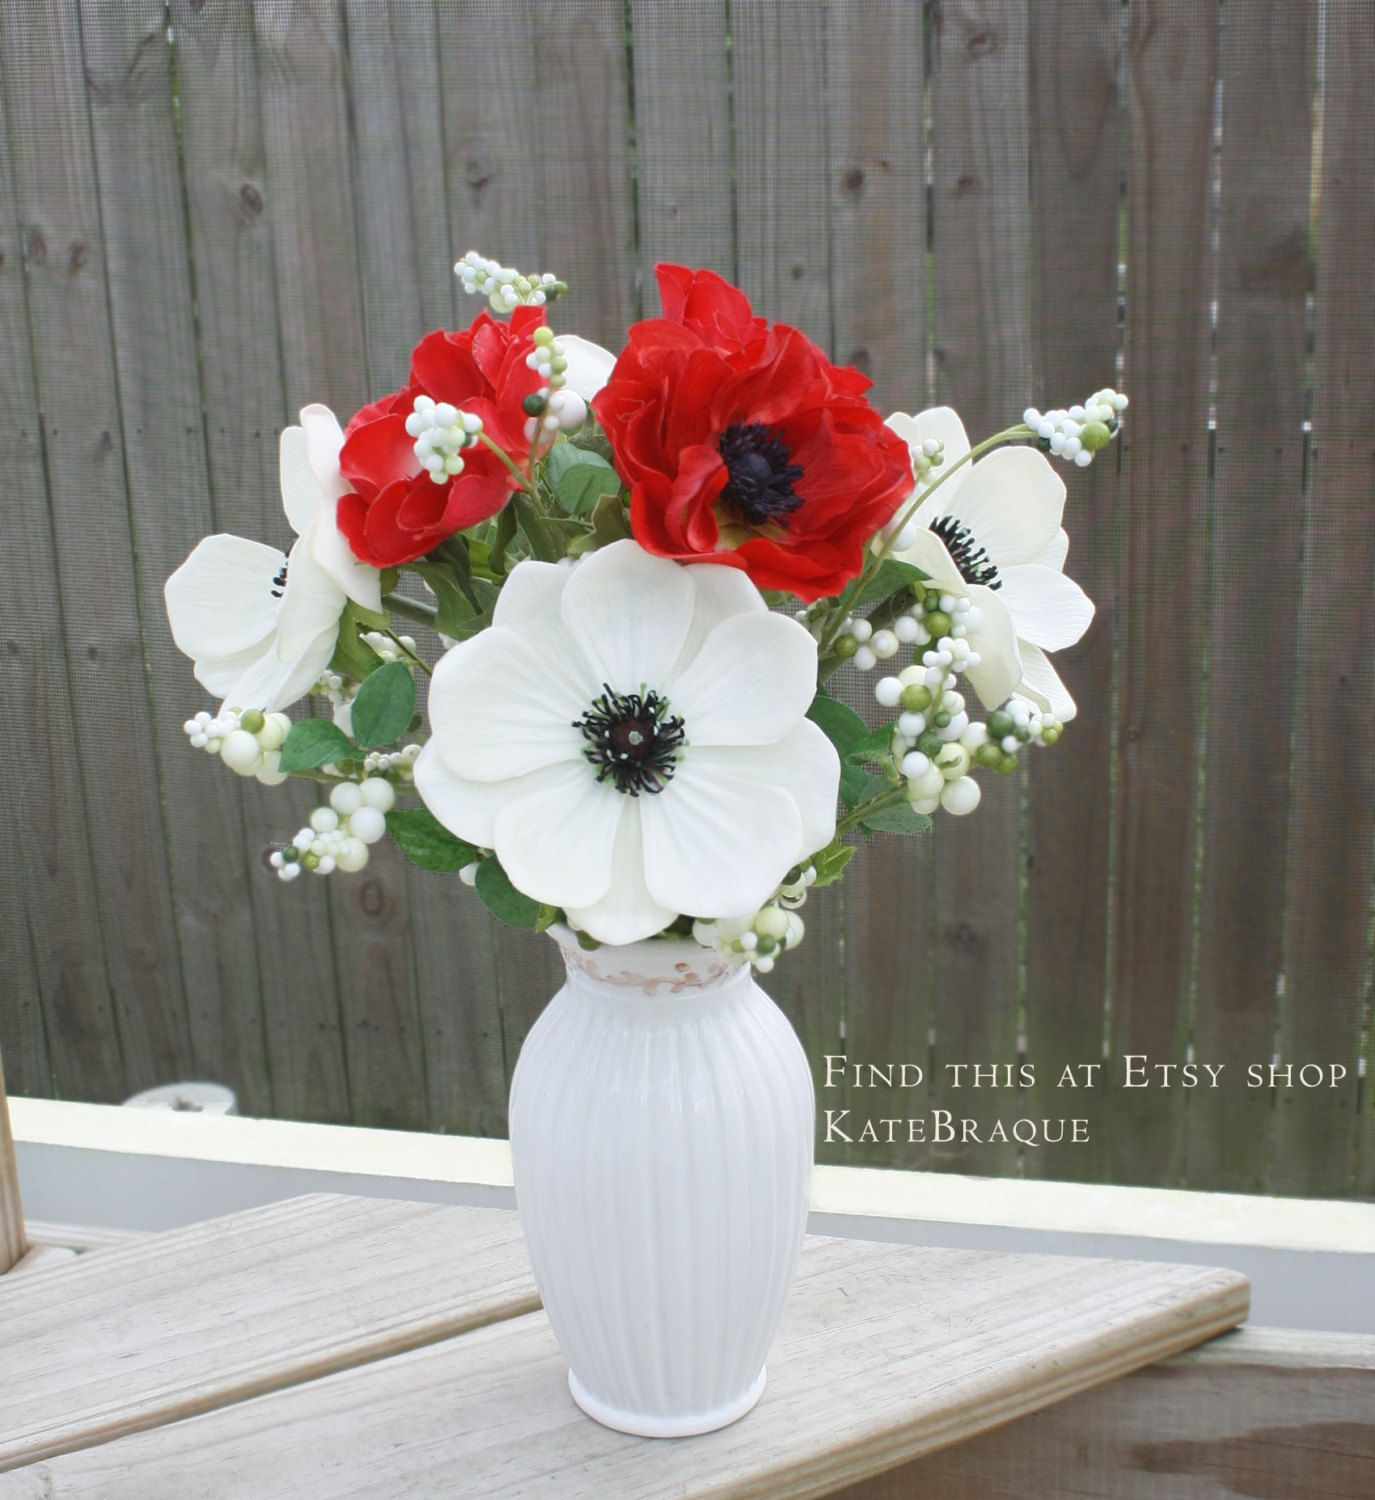 Real touch white anemone faux red anemone flower bouquet real touch white anemone faux red anemone flower bouquet centerpiece by katebraque on etsy izmirmasajfo